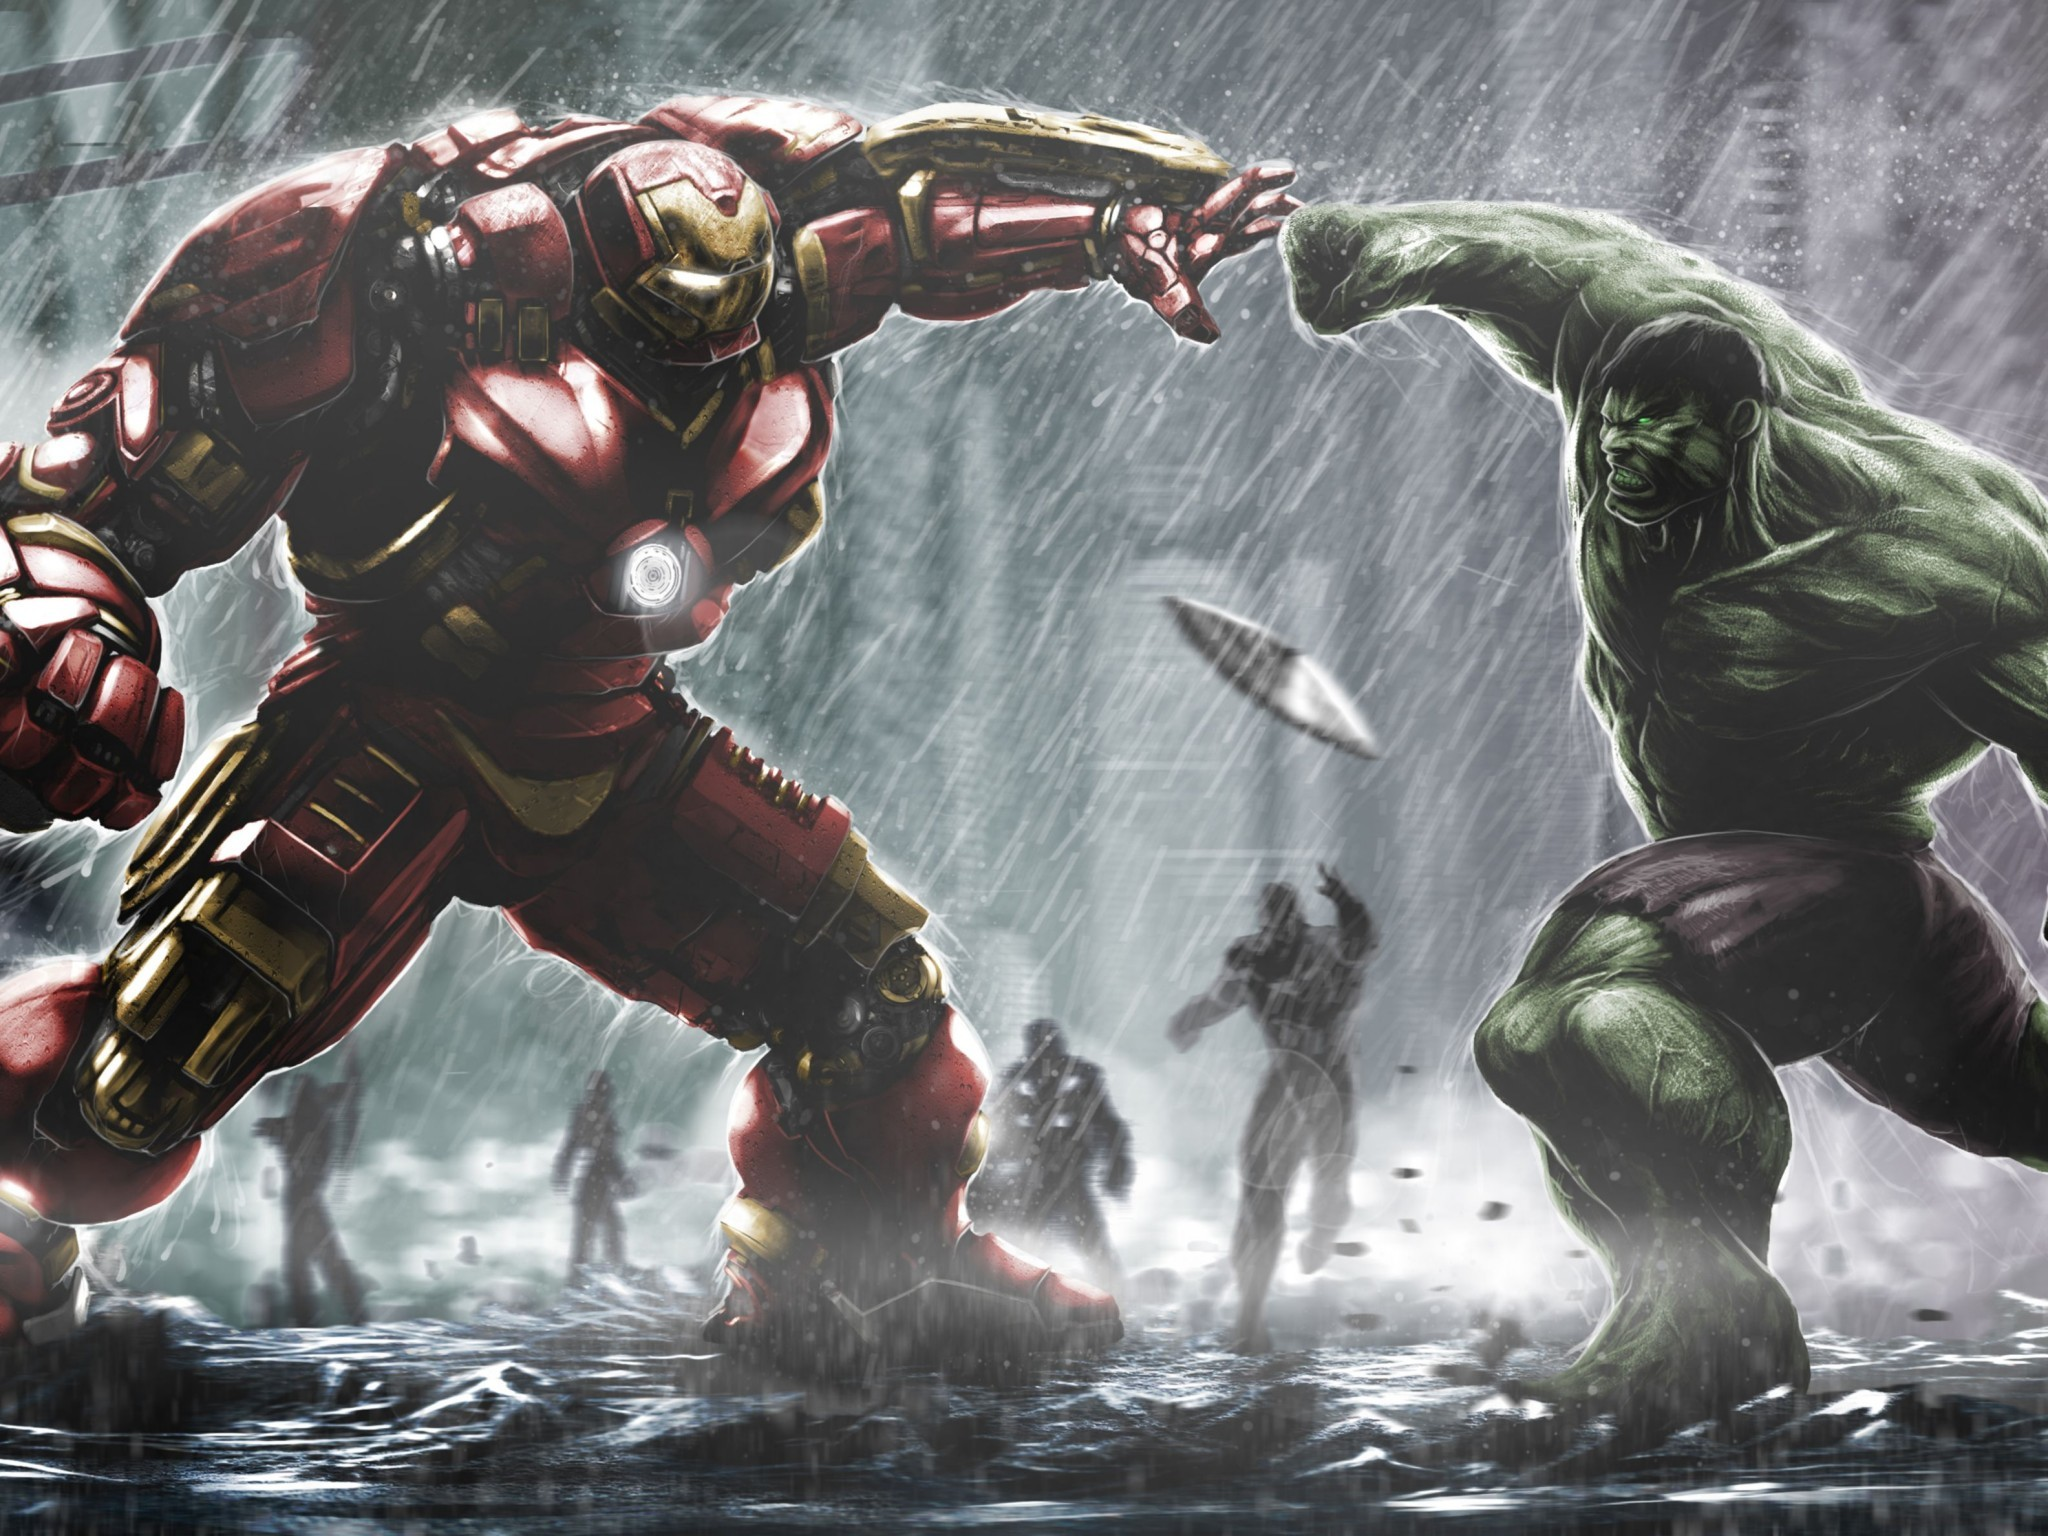 Res: 2048x1536, Hulkbuster Ironman Vs Hulk HD Wallpaper